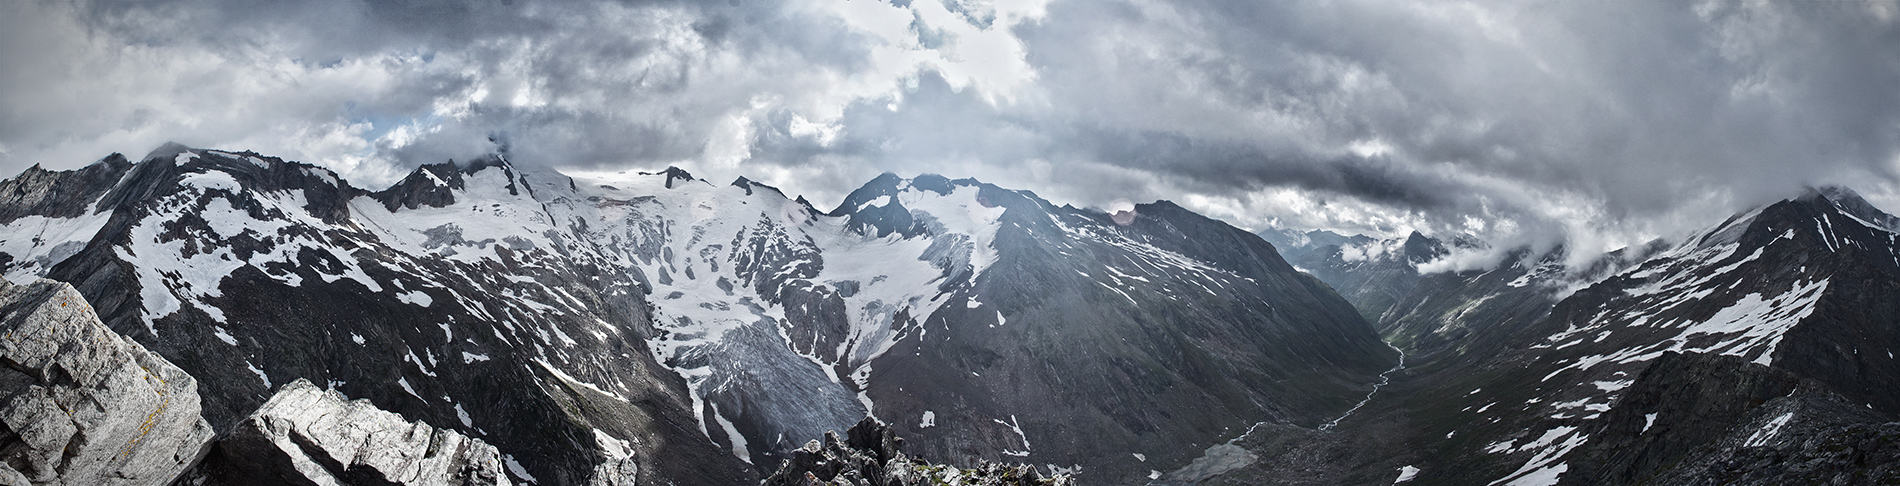 3051m by rembrandt83